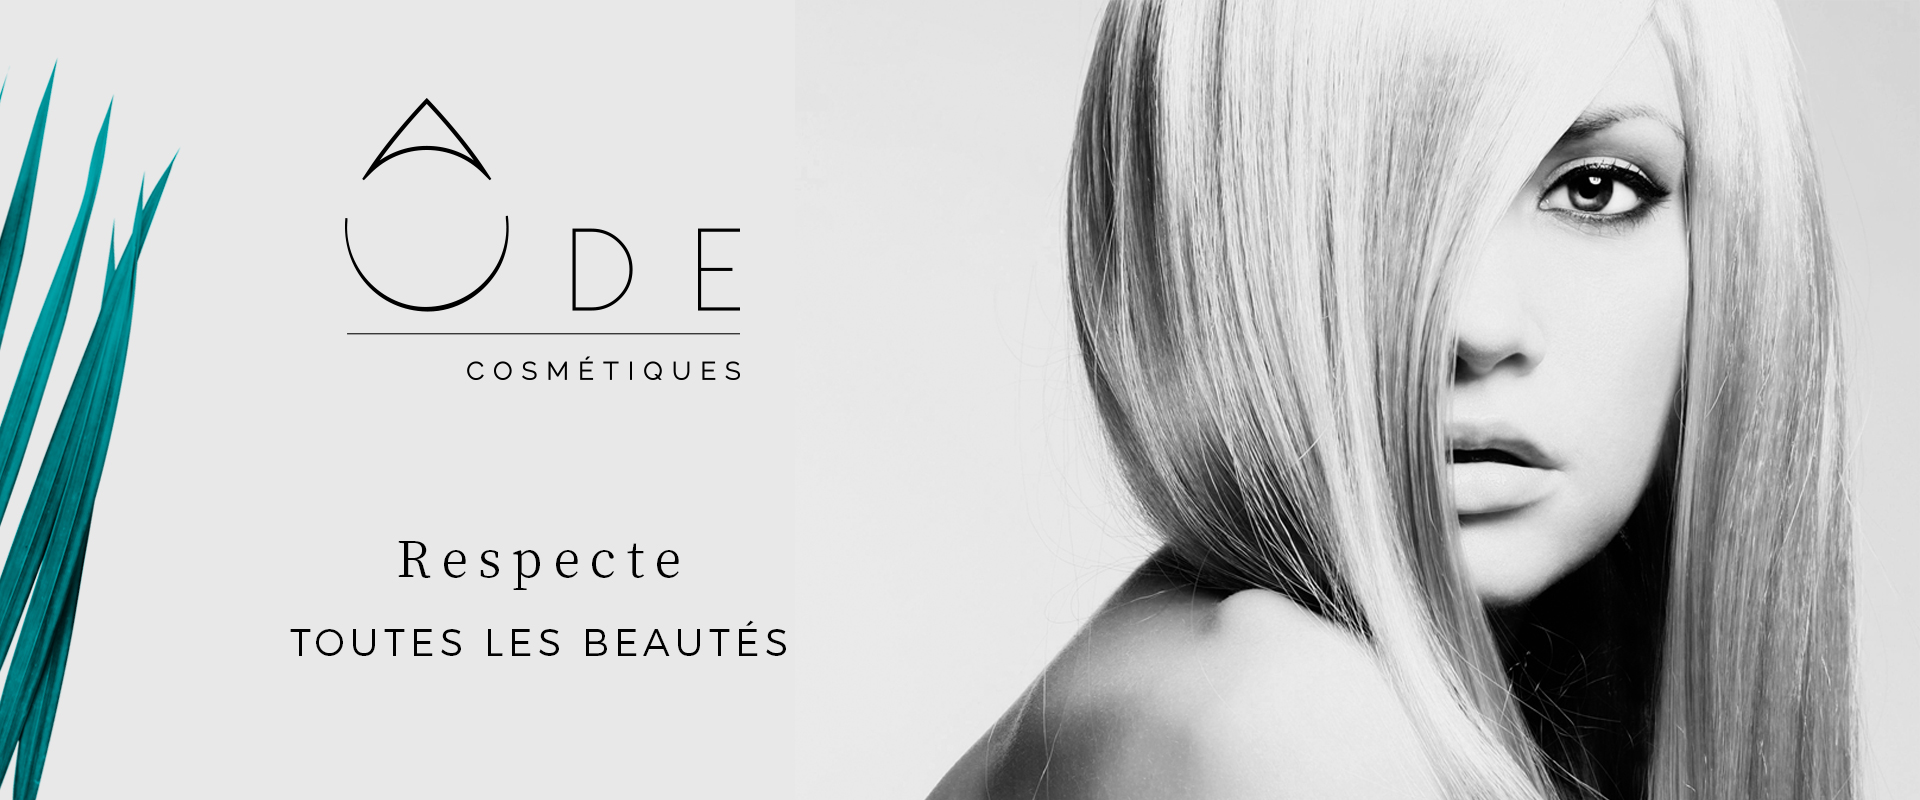 ode cosmetiques